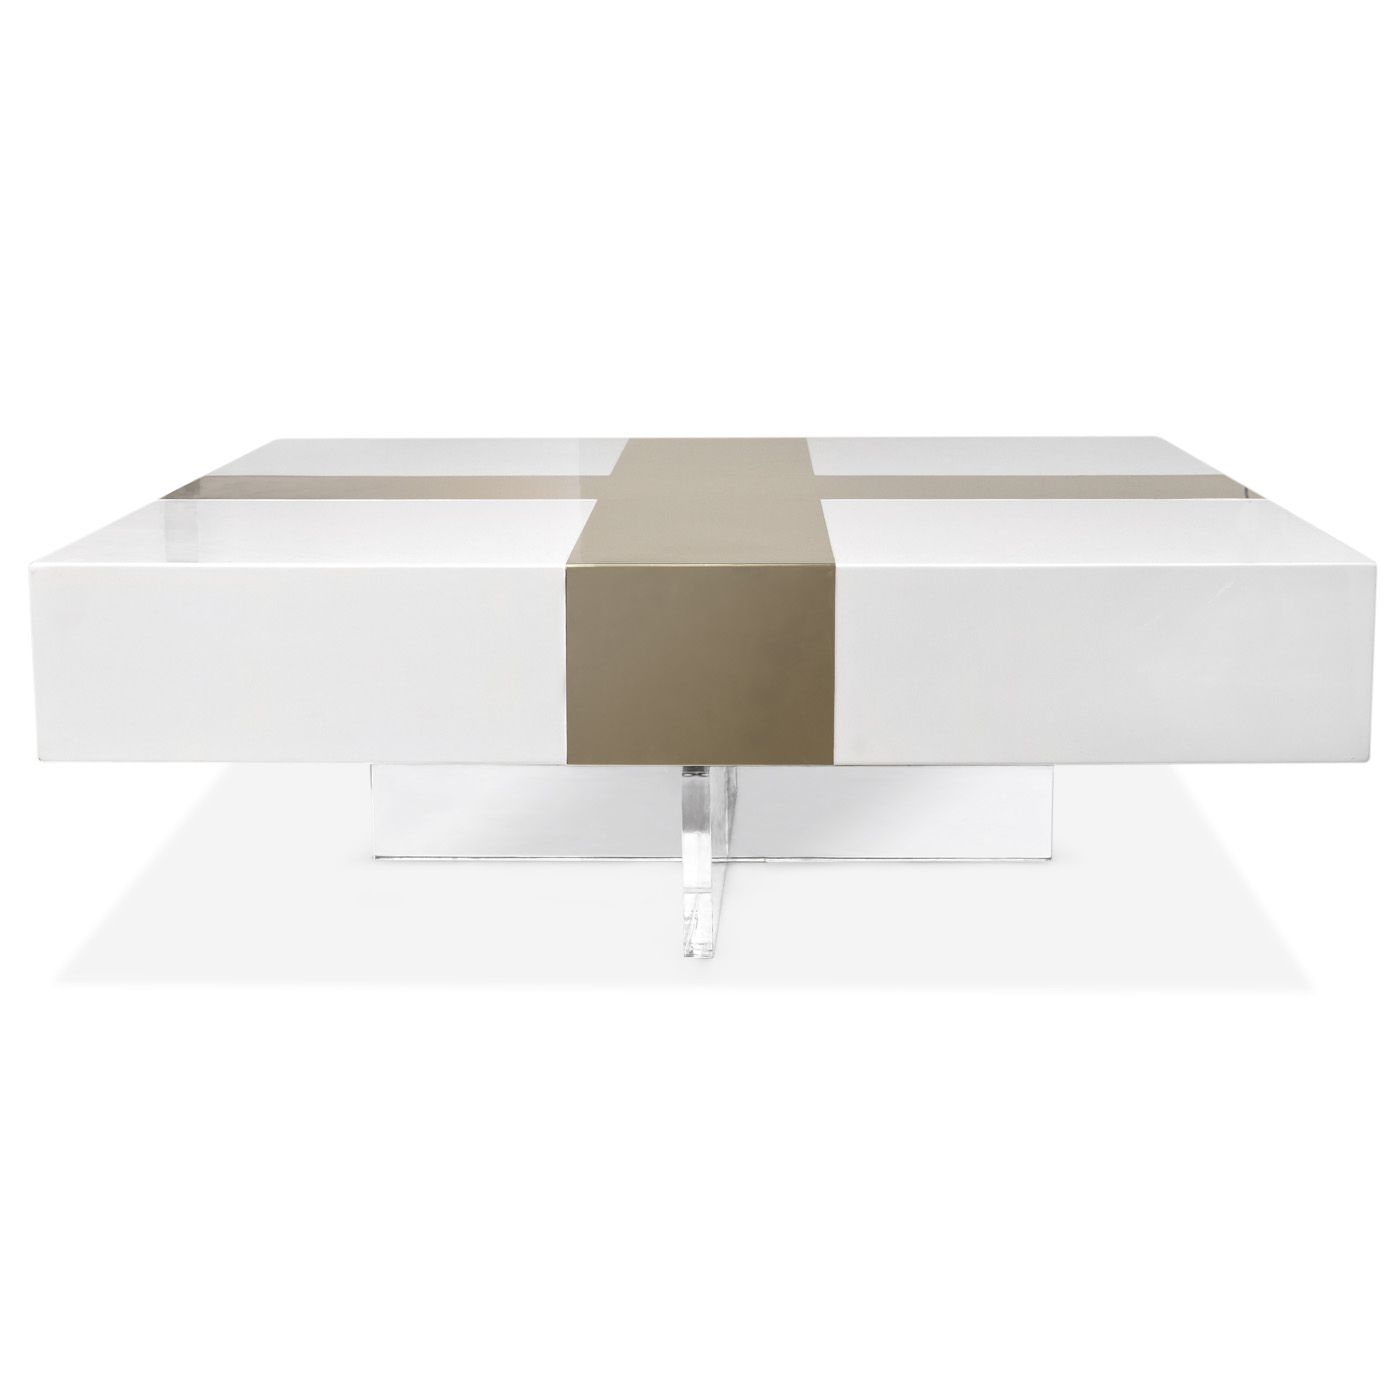 Jonathan Adler Lacquer Brass Inset Cocktail Table Coffee Table